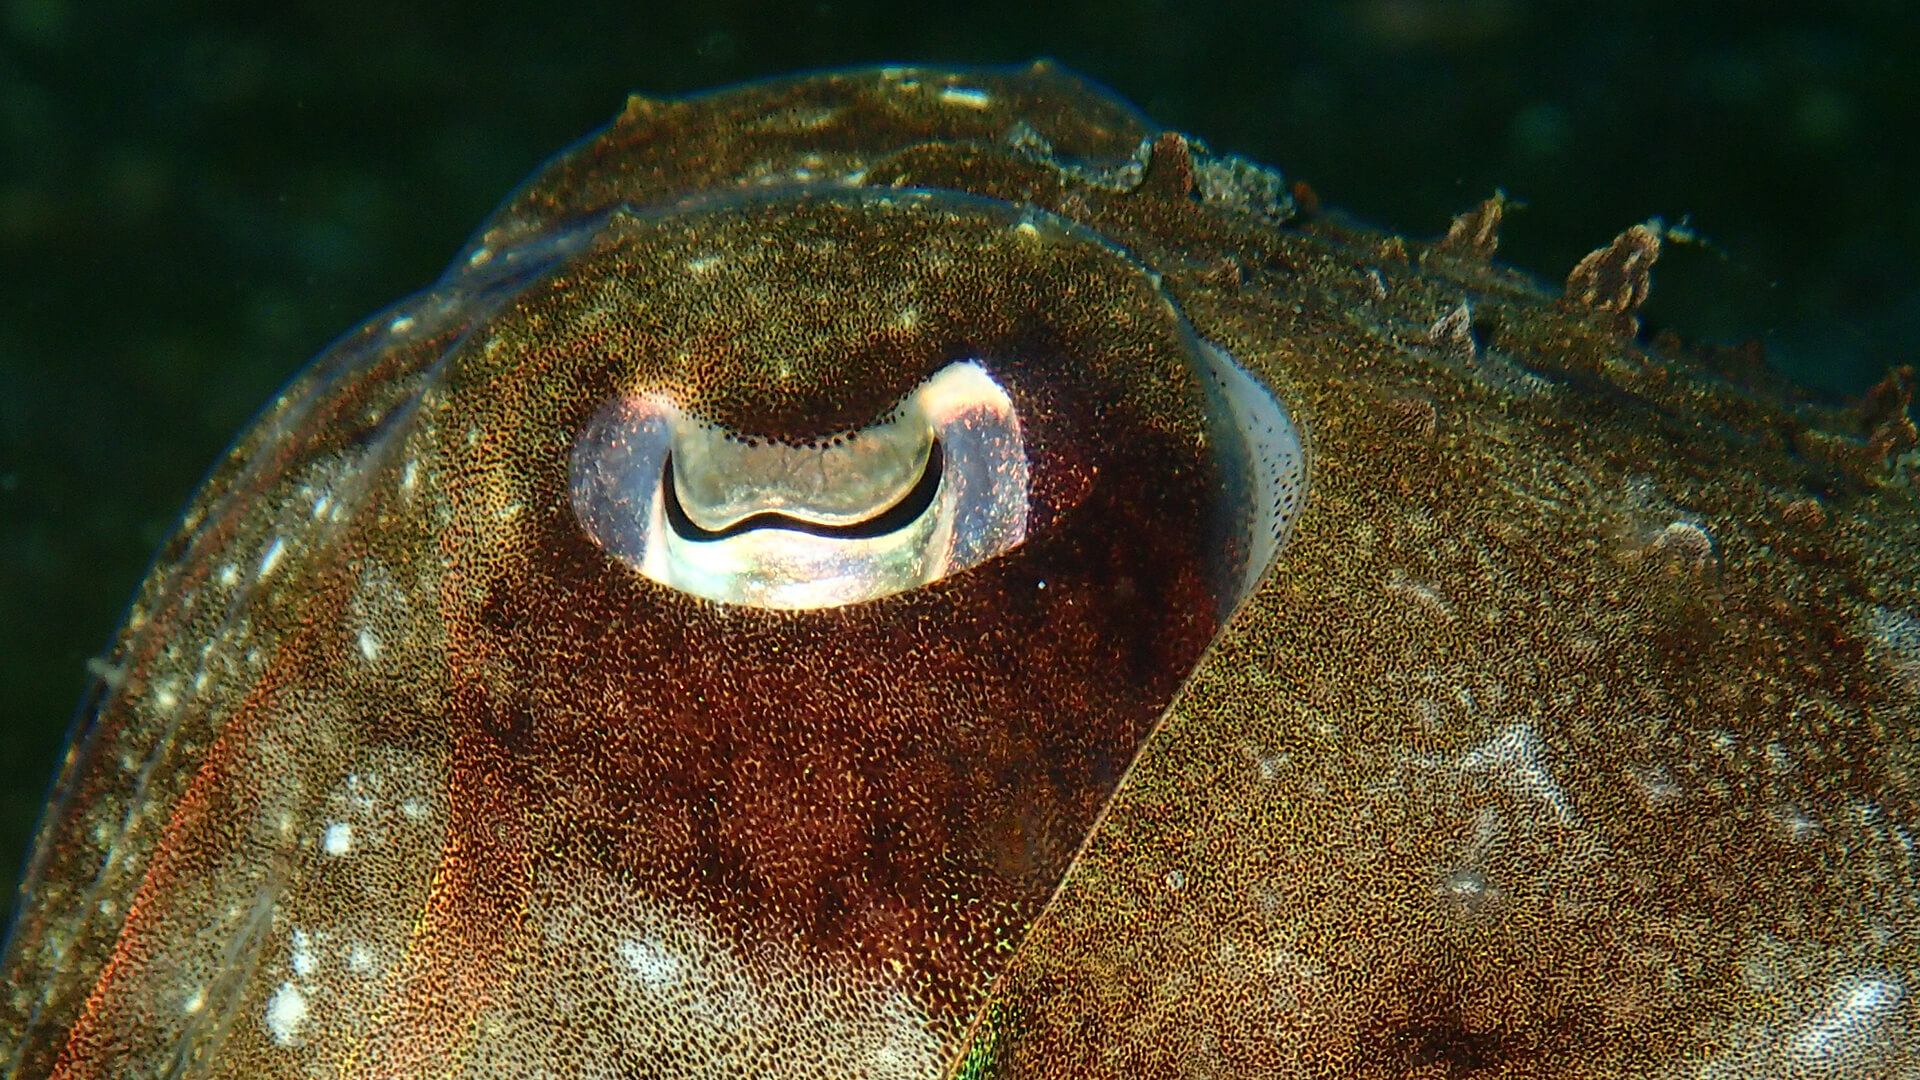 W shaped Eye of A Cuttlefish